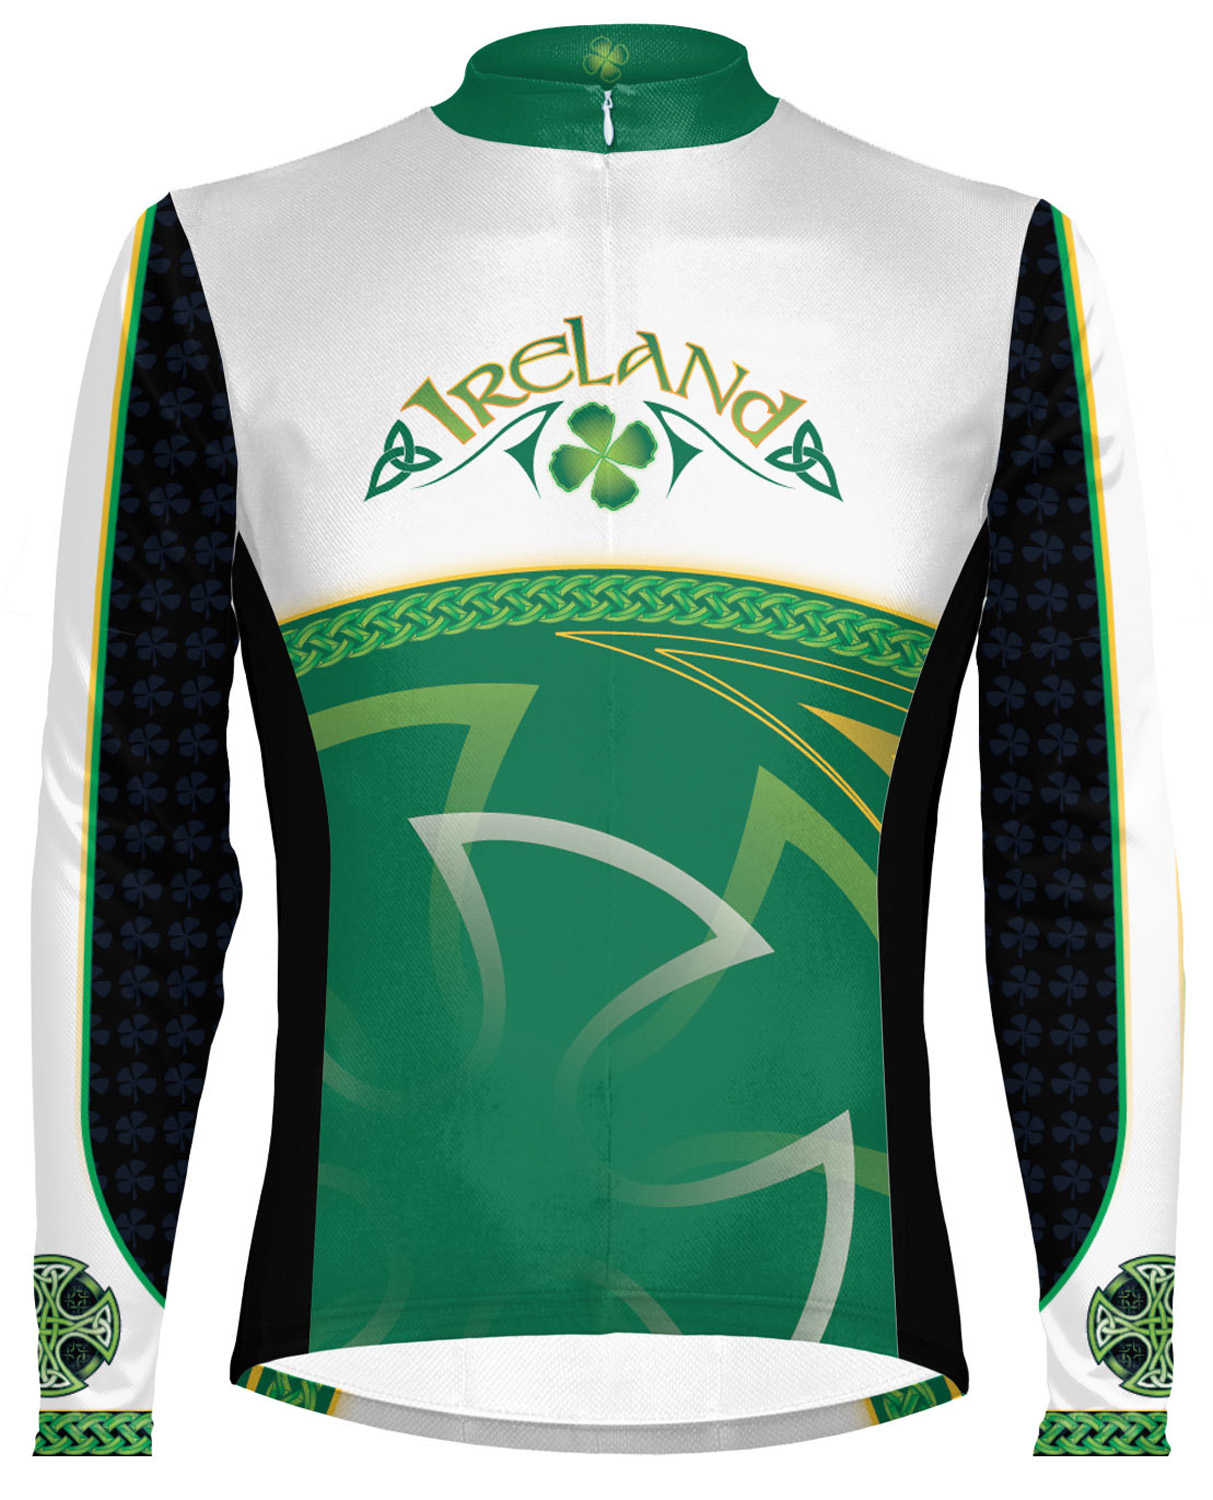 ee80d6963 SALE Primal Wear Ireland Cycling Jersey Mens Celtic Long Sleeve with DeFeet  Sox